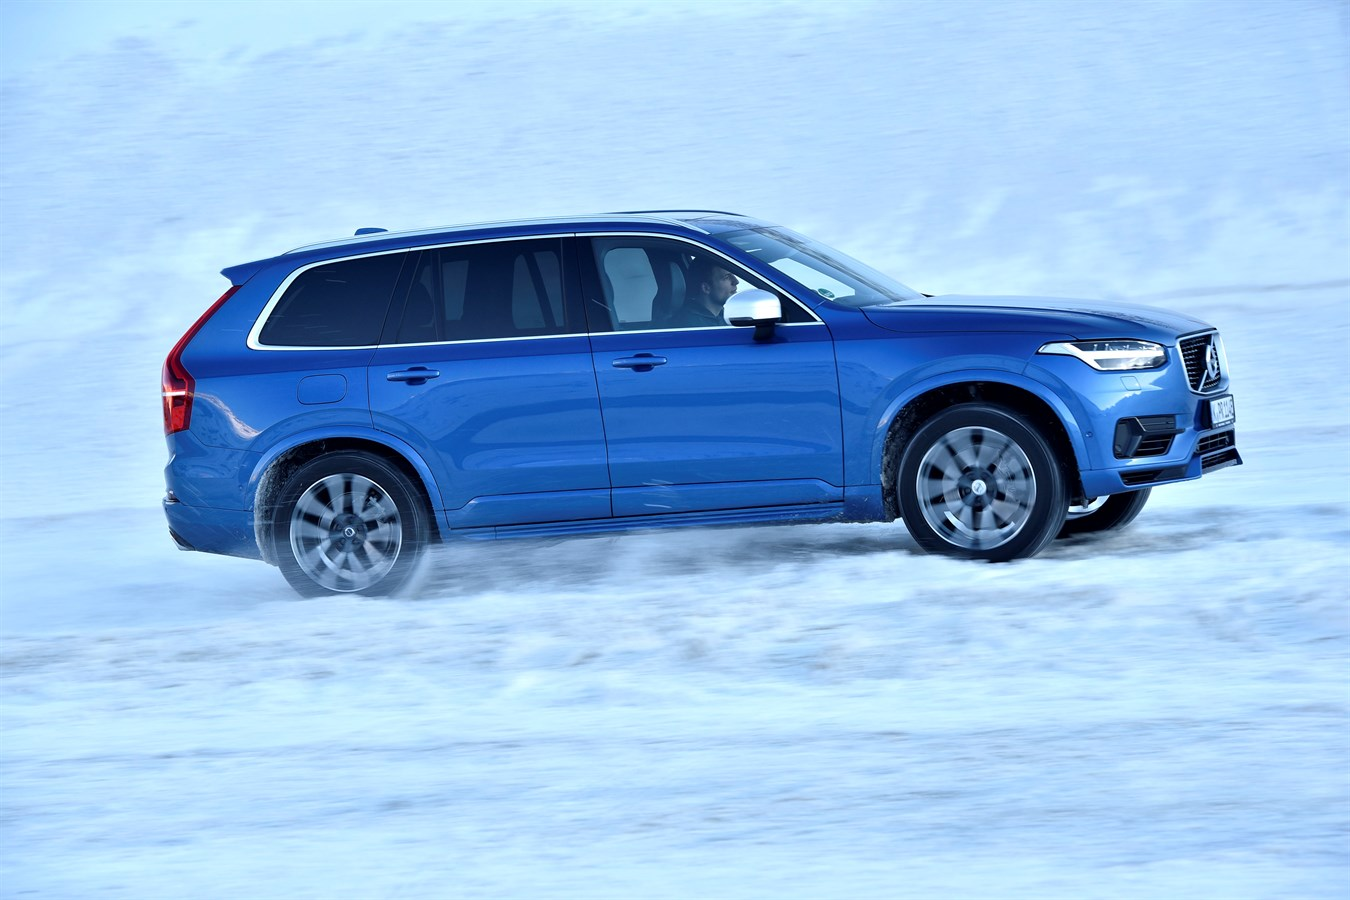 Volvo Cars Announces Range Of Updates For Model Year 2017 Car Group Global Media Newsroom